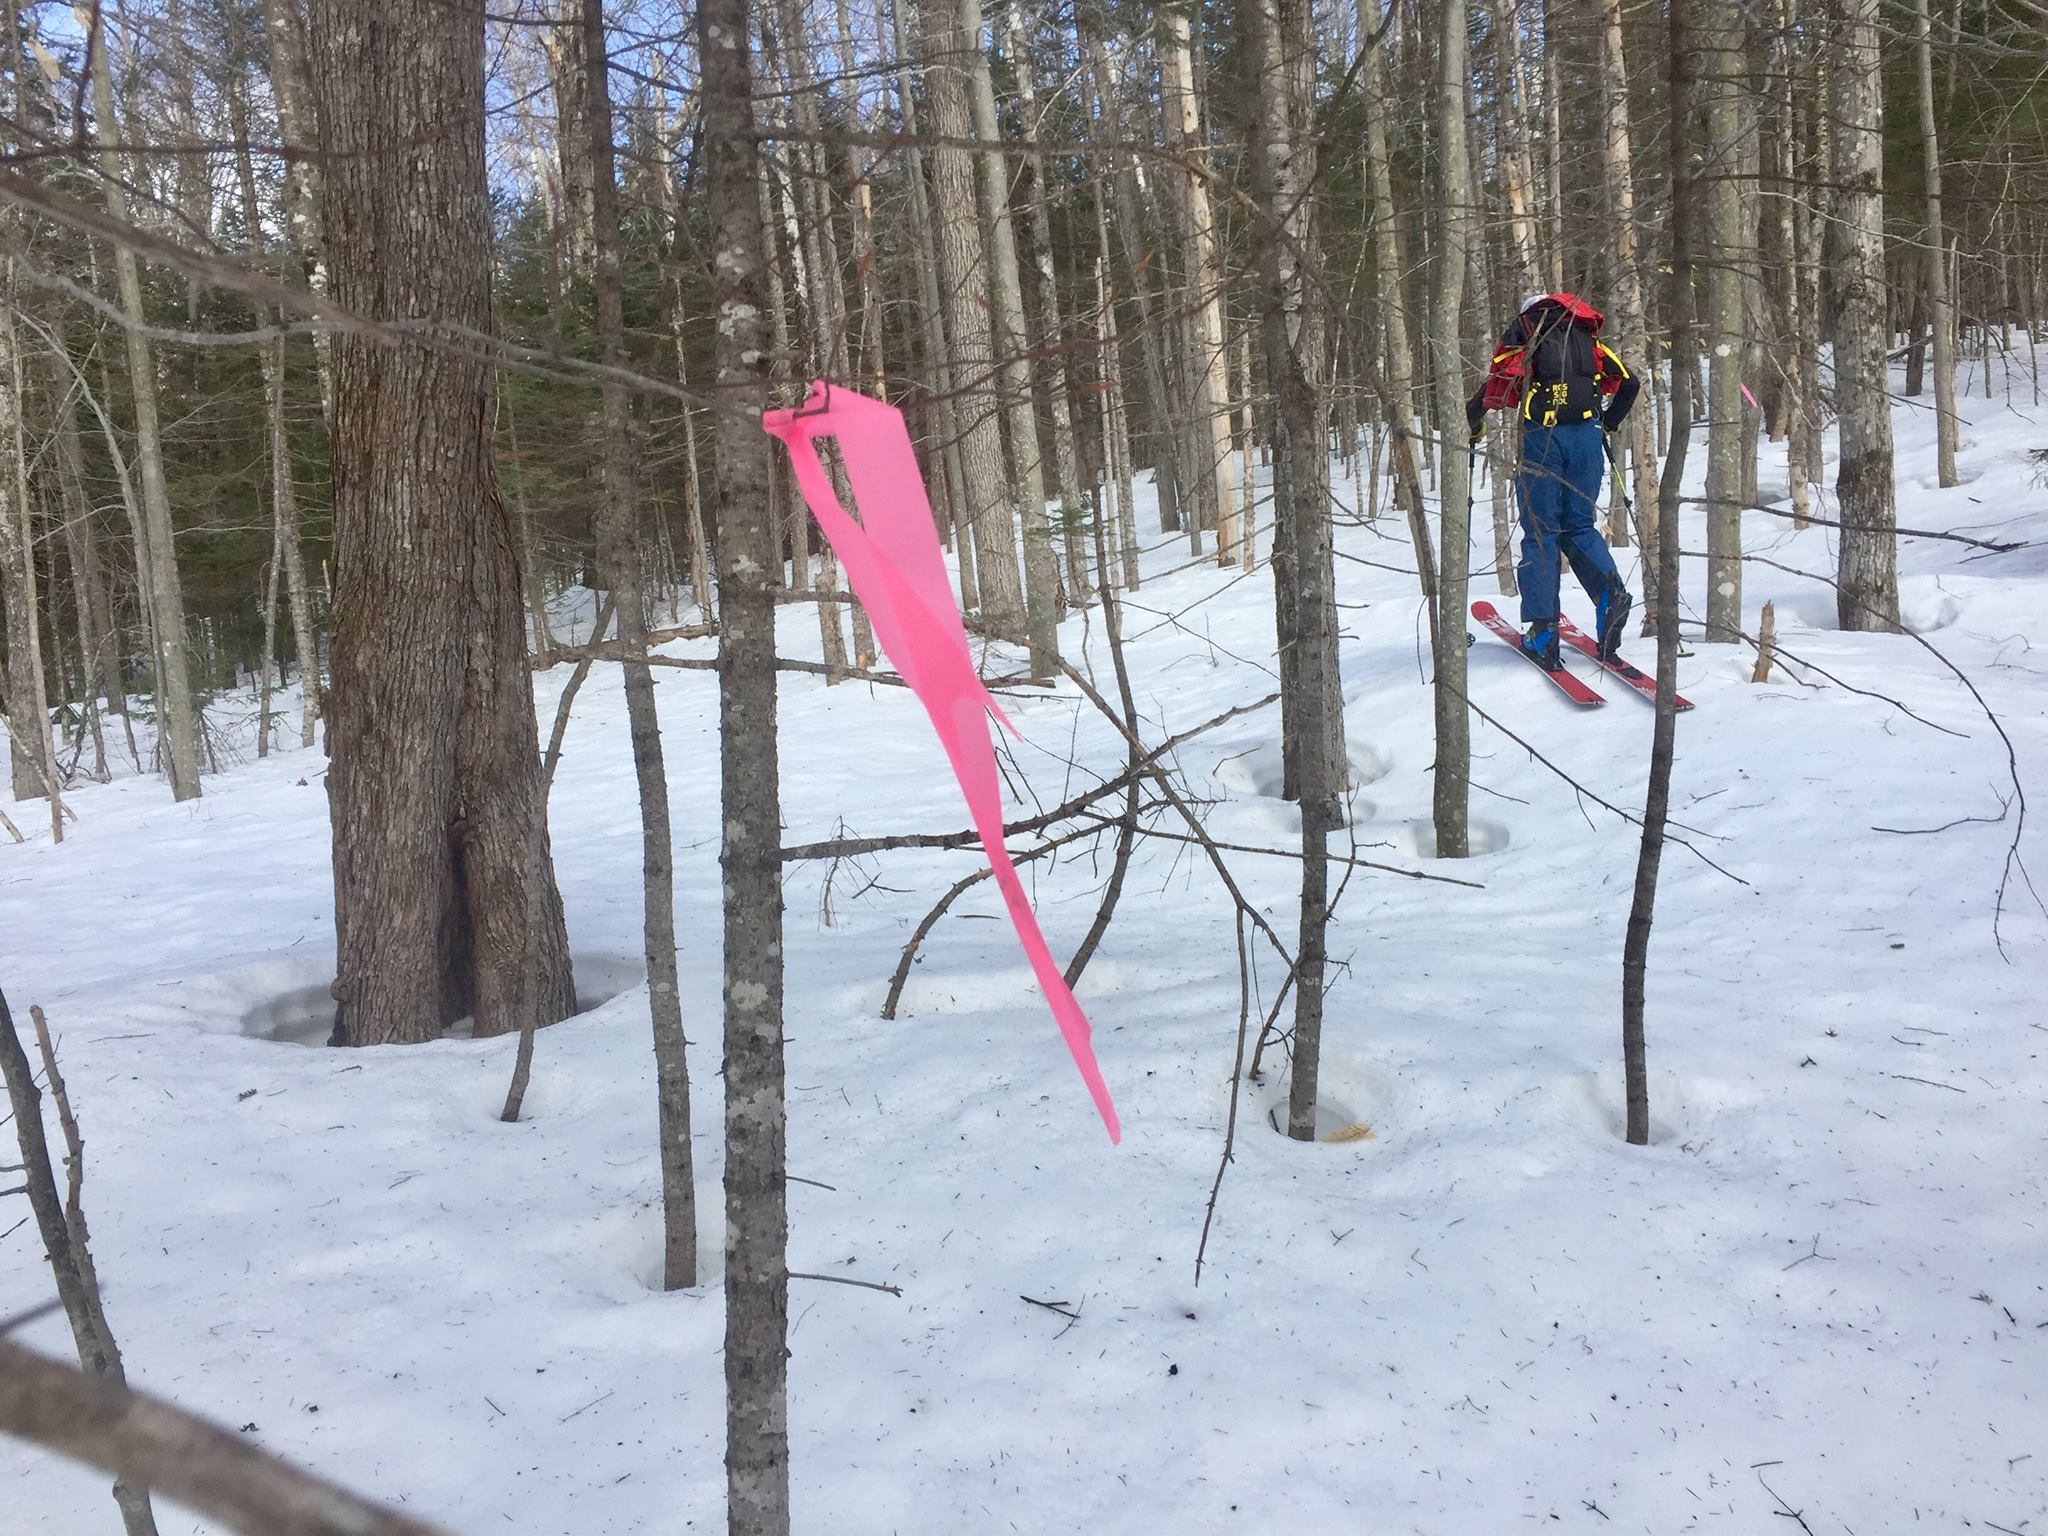 Doublehead Ski Trail - Project Status: APPROVEDLevel: FEDERALDate: July 29 - July 30Time: 8am - 4pmLocation:Black Mountain Parking LotContact: Tyler RayRSVP: Facebook